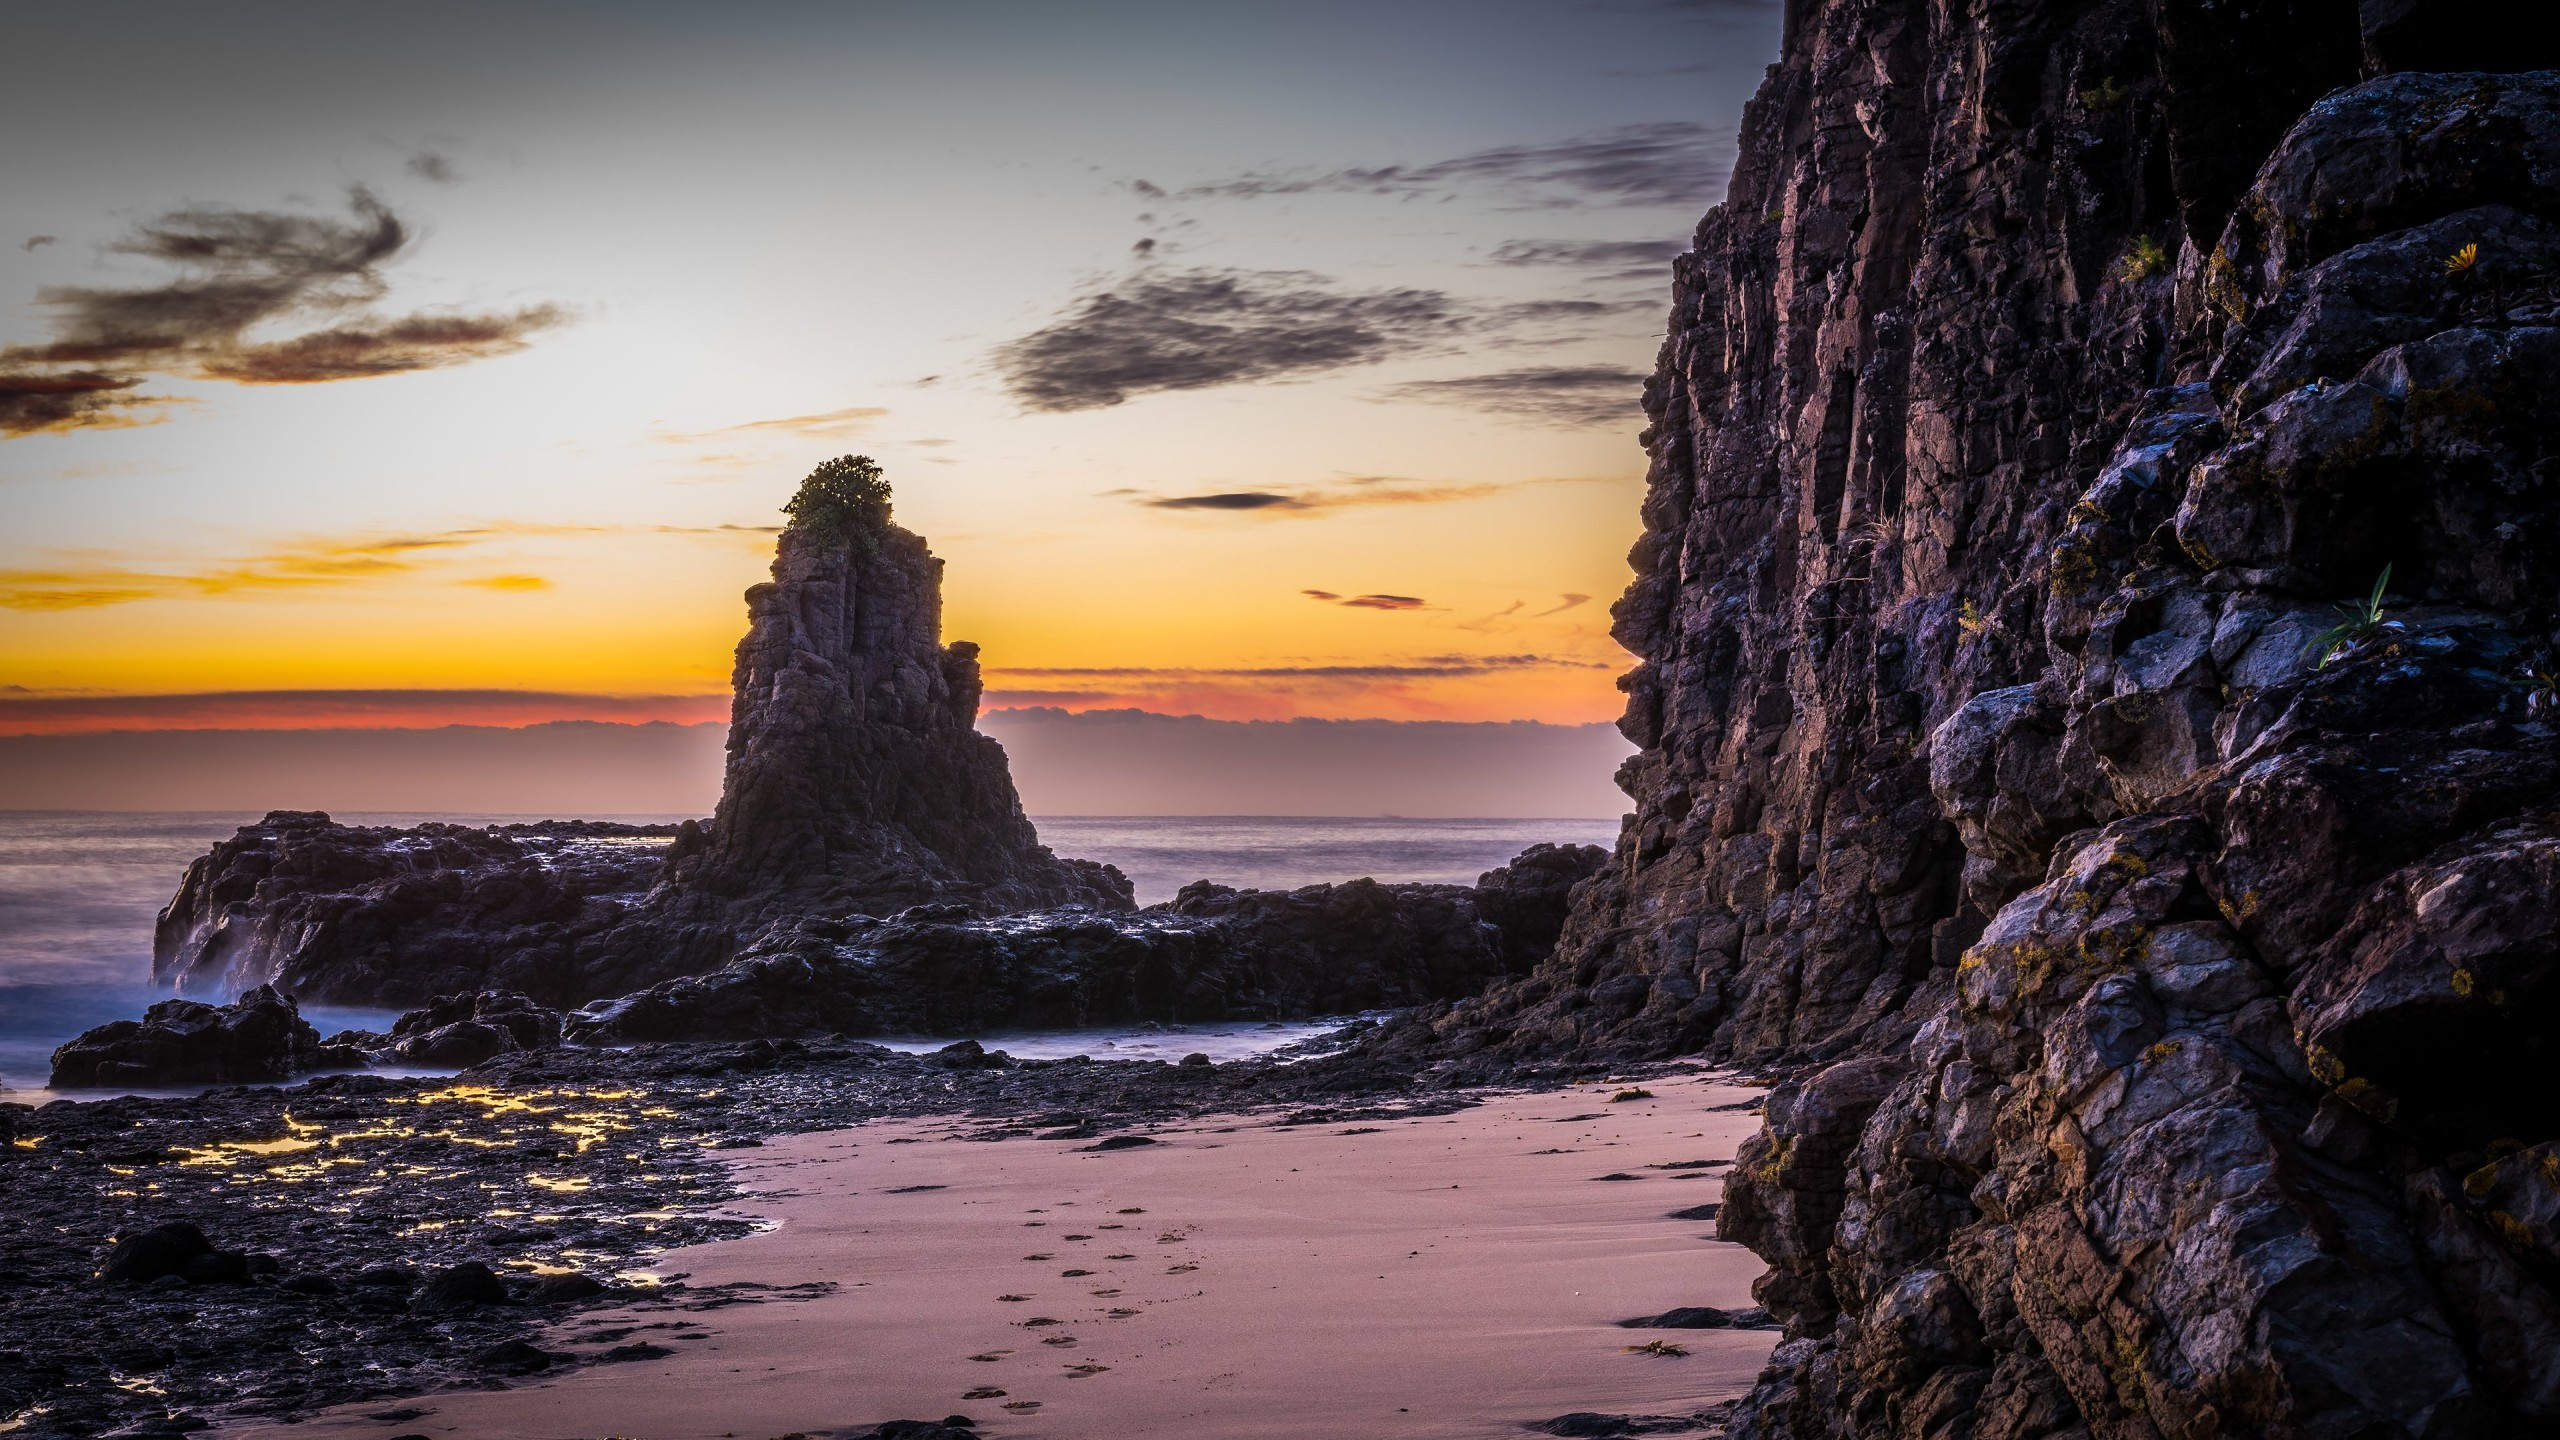 Kiama Downs, New South Wales, Australia. Wallpaper for Social Media YouTube Channel Art